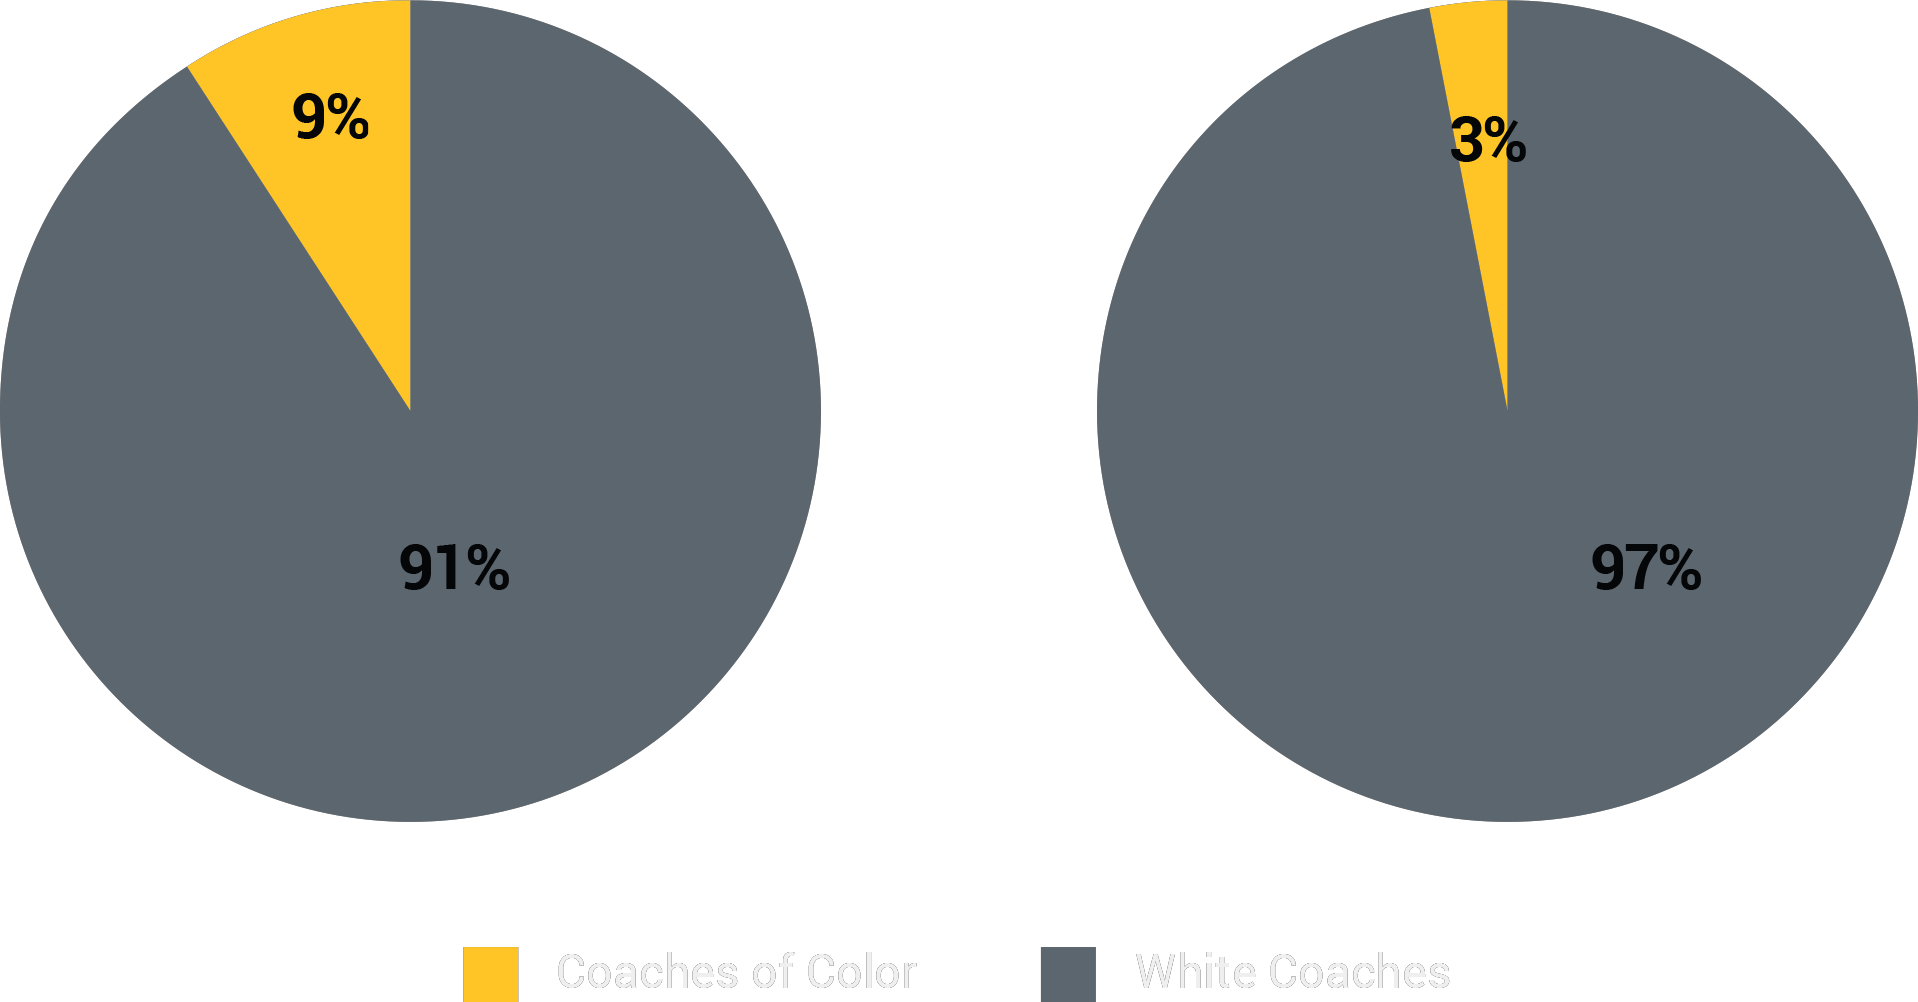 Racial/Ethnic Breakdown of NFL Offensive Coordinators